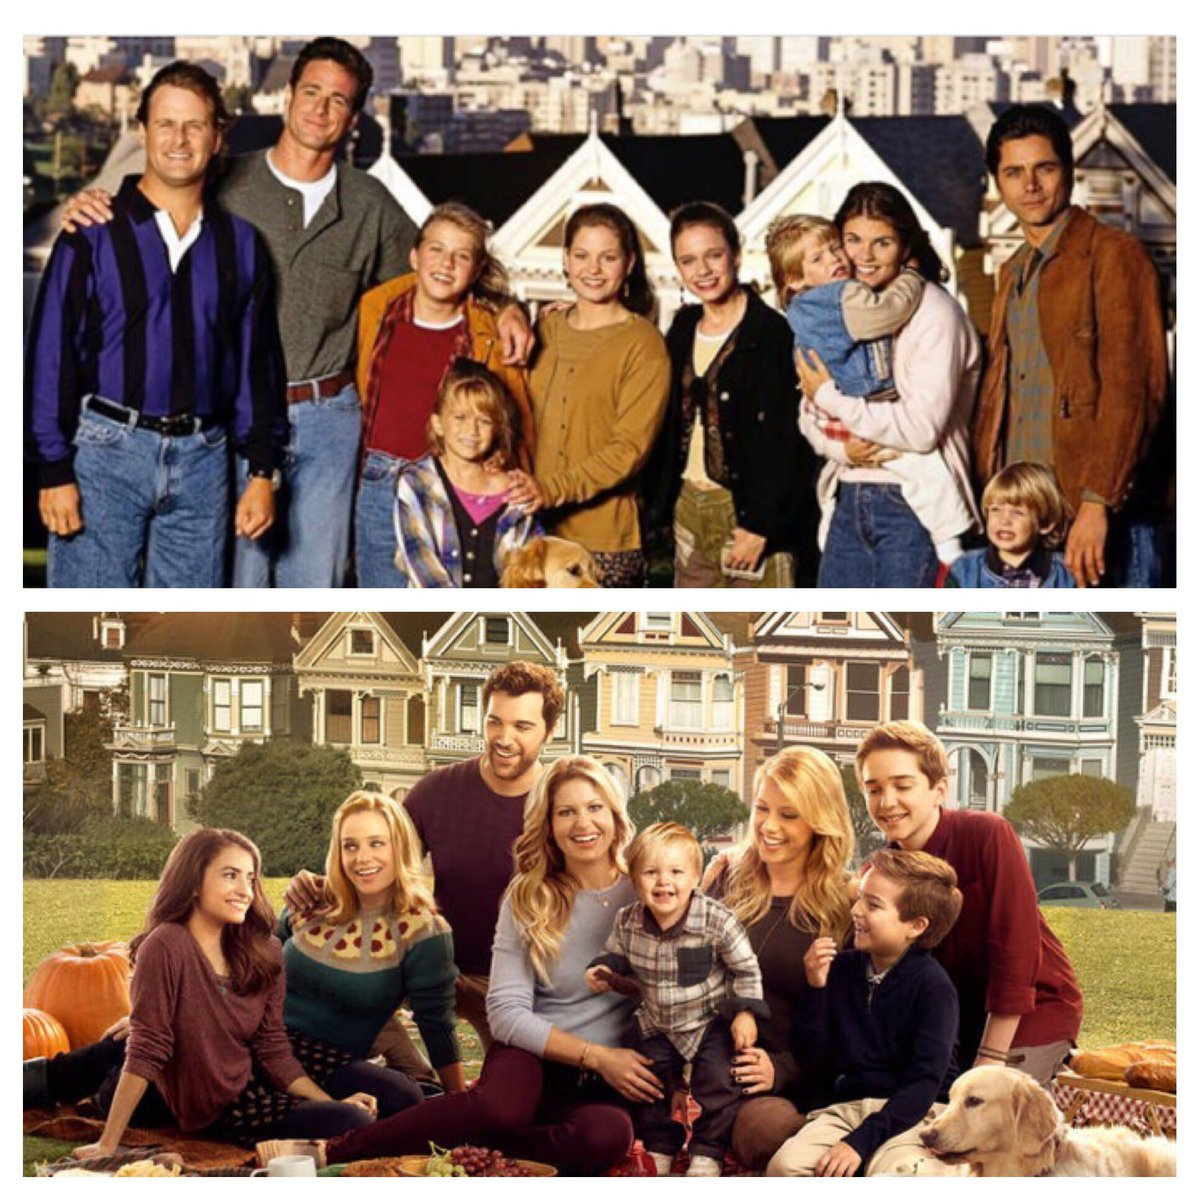 29 years ago today, Full House premiered. Sept 22, 1987. ❤️